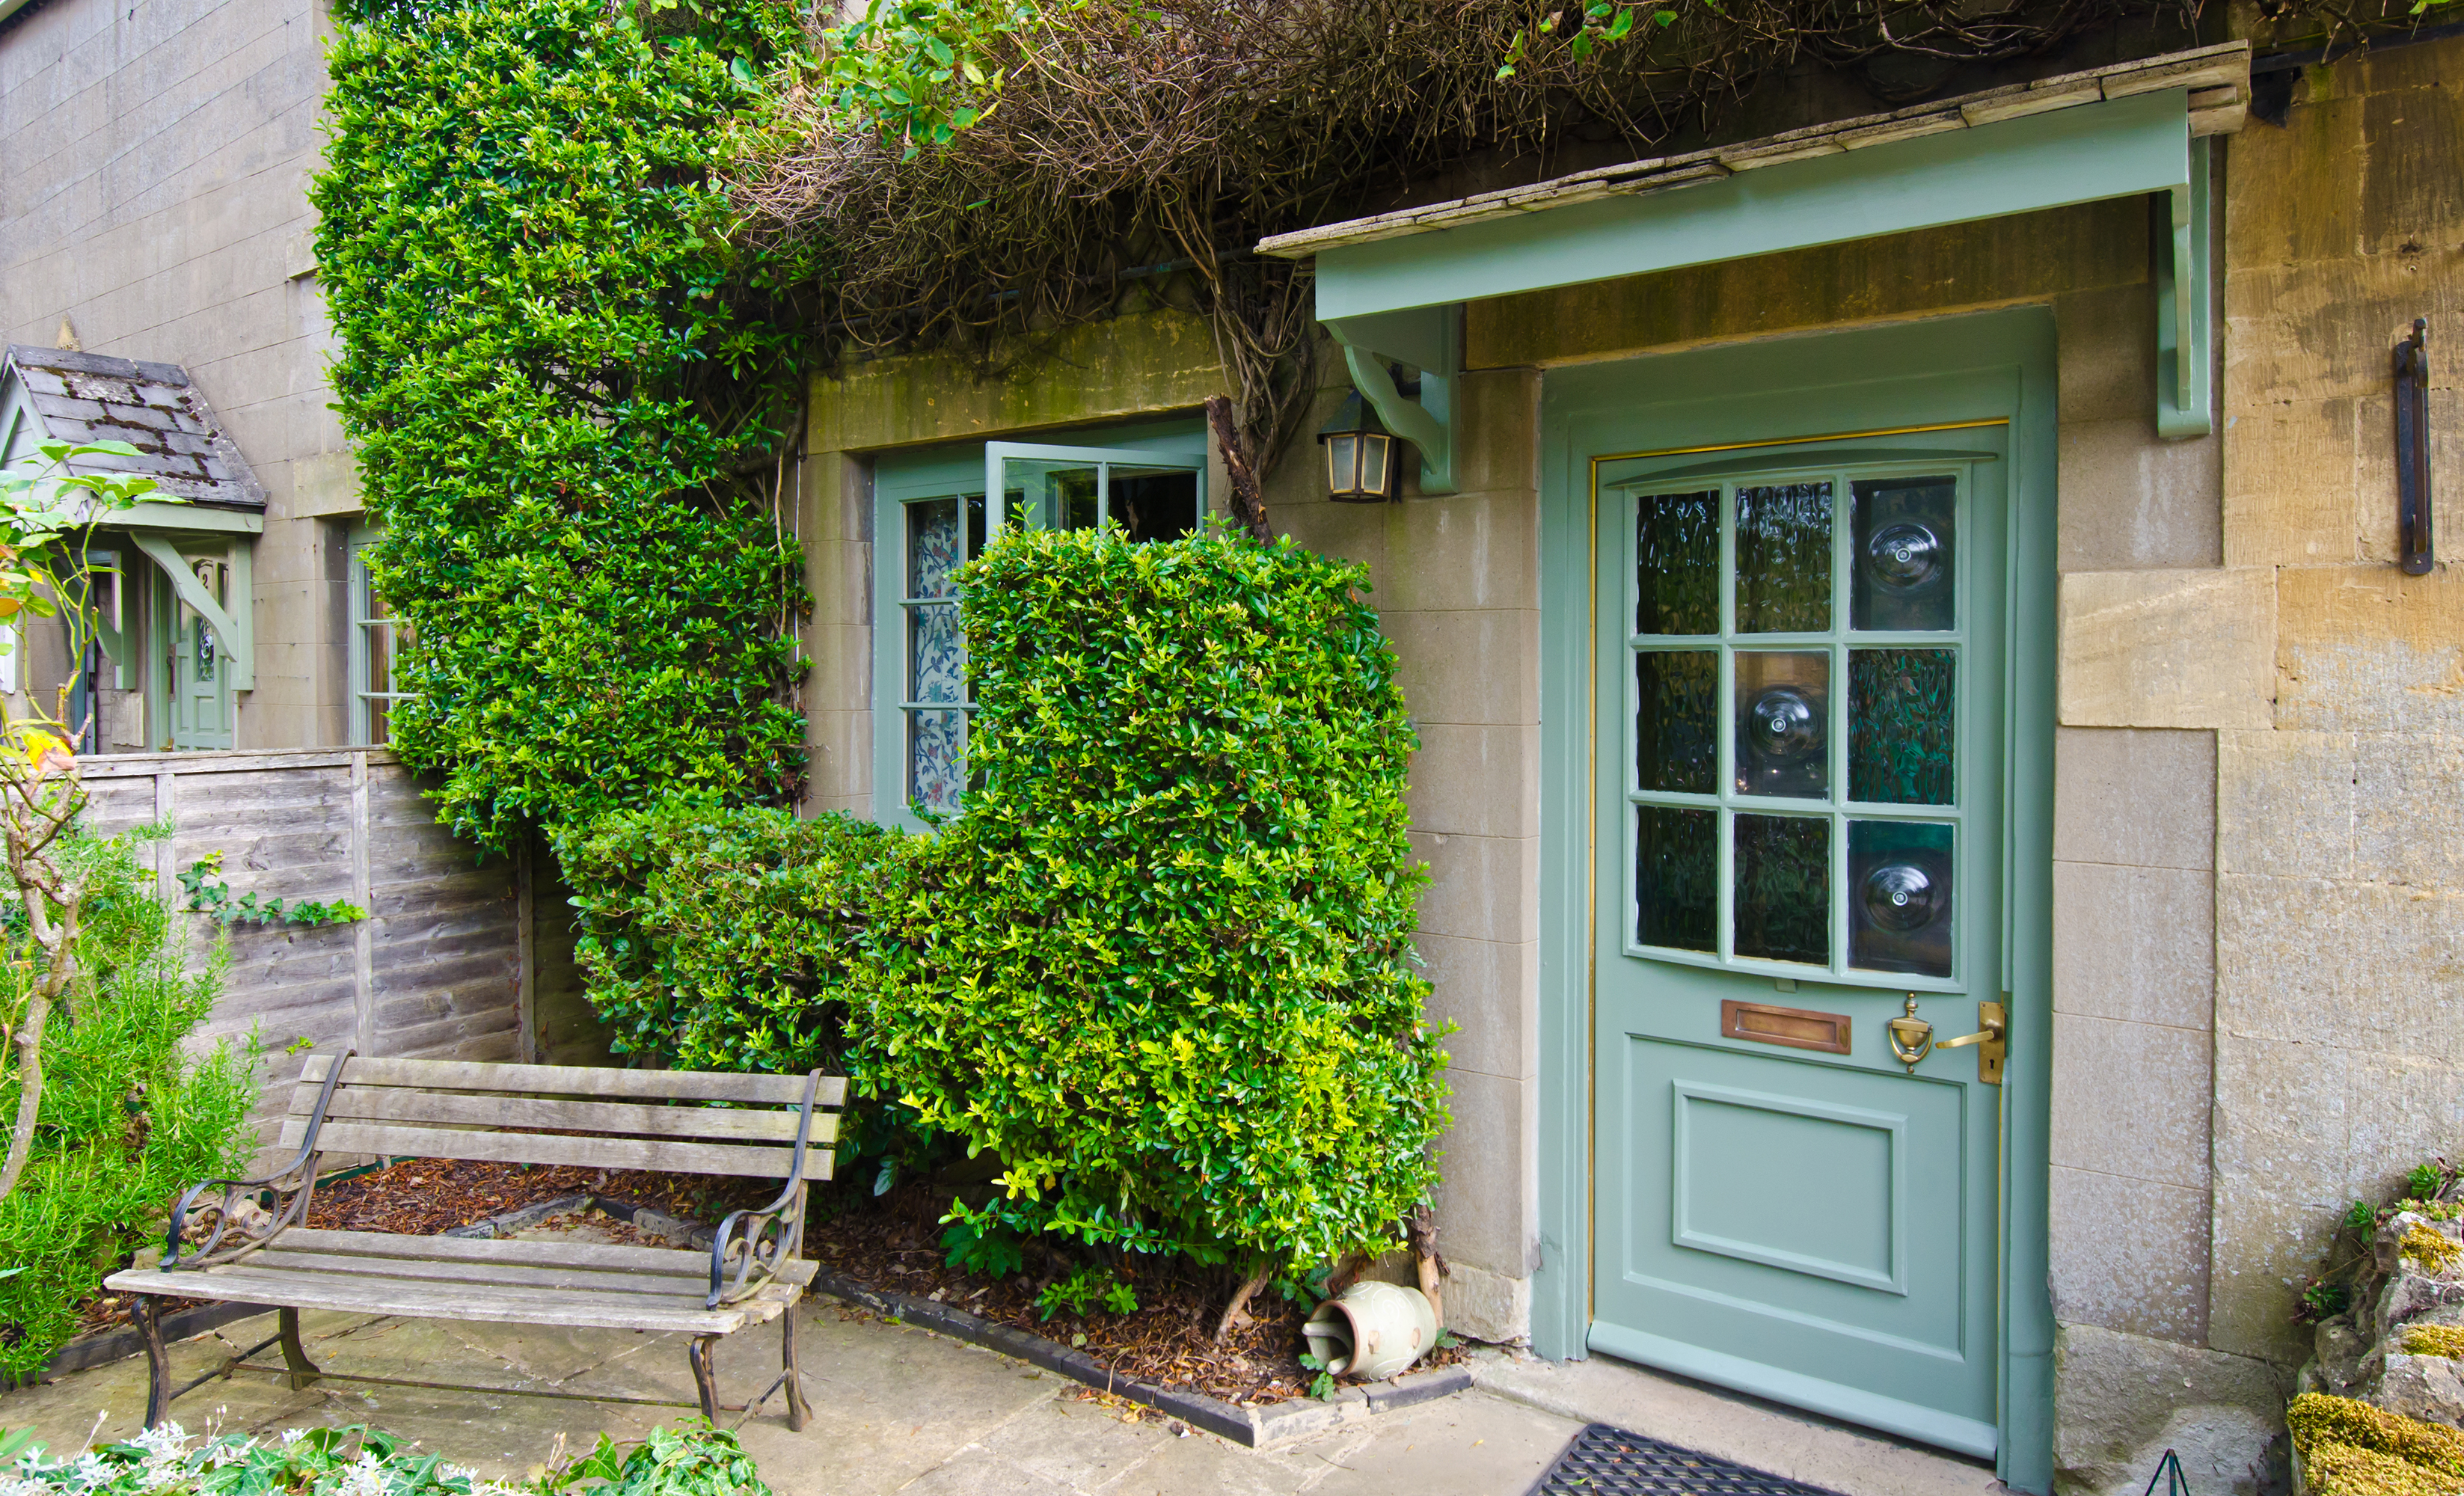 Country house with green plants growing on it